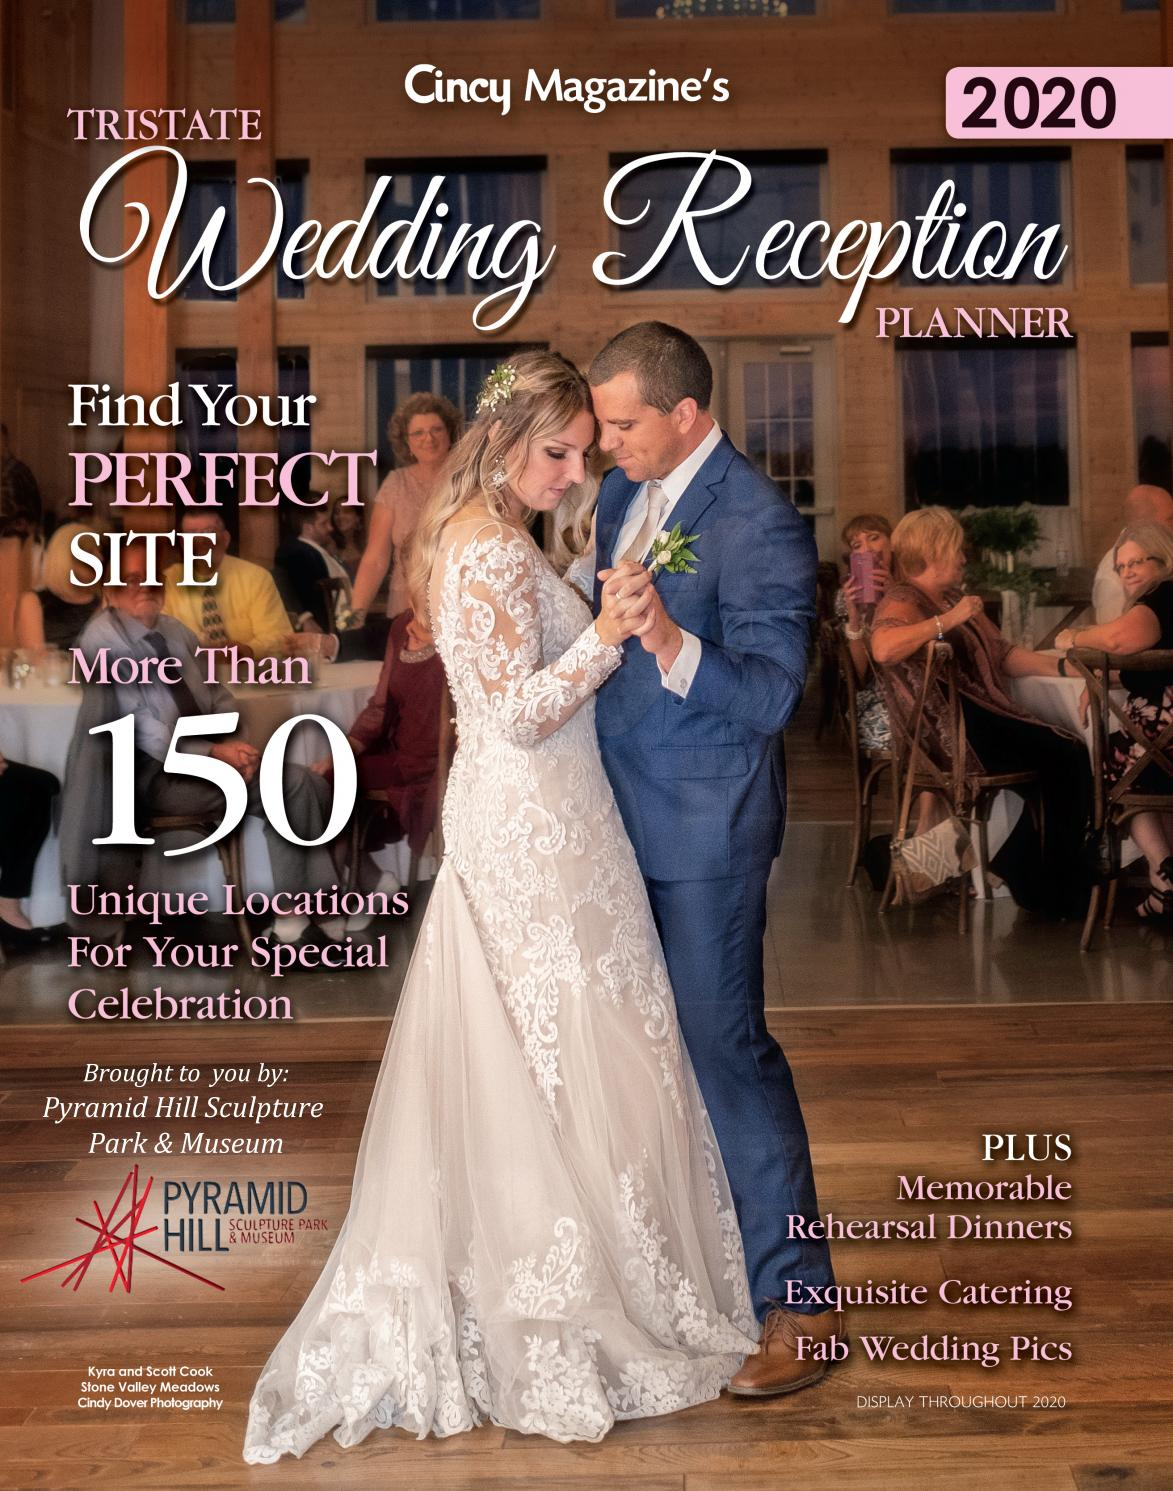 Cincy Magazine S Tristate Wedding Reception Planner 2020 By Cincy